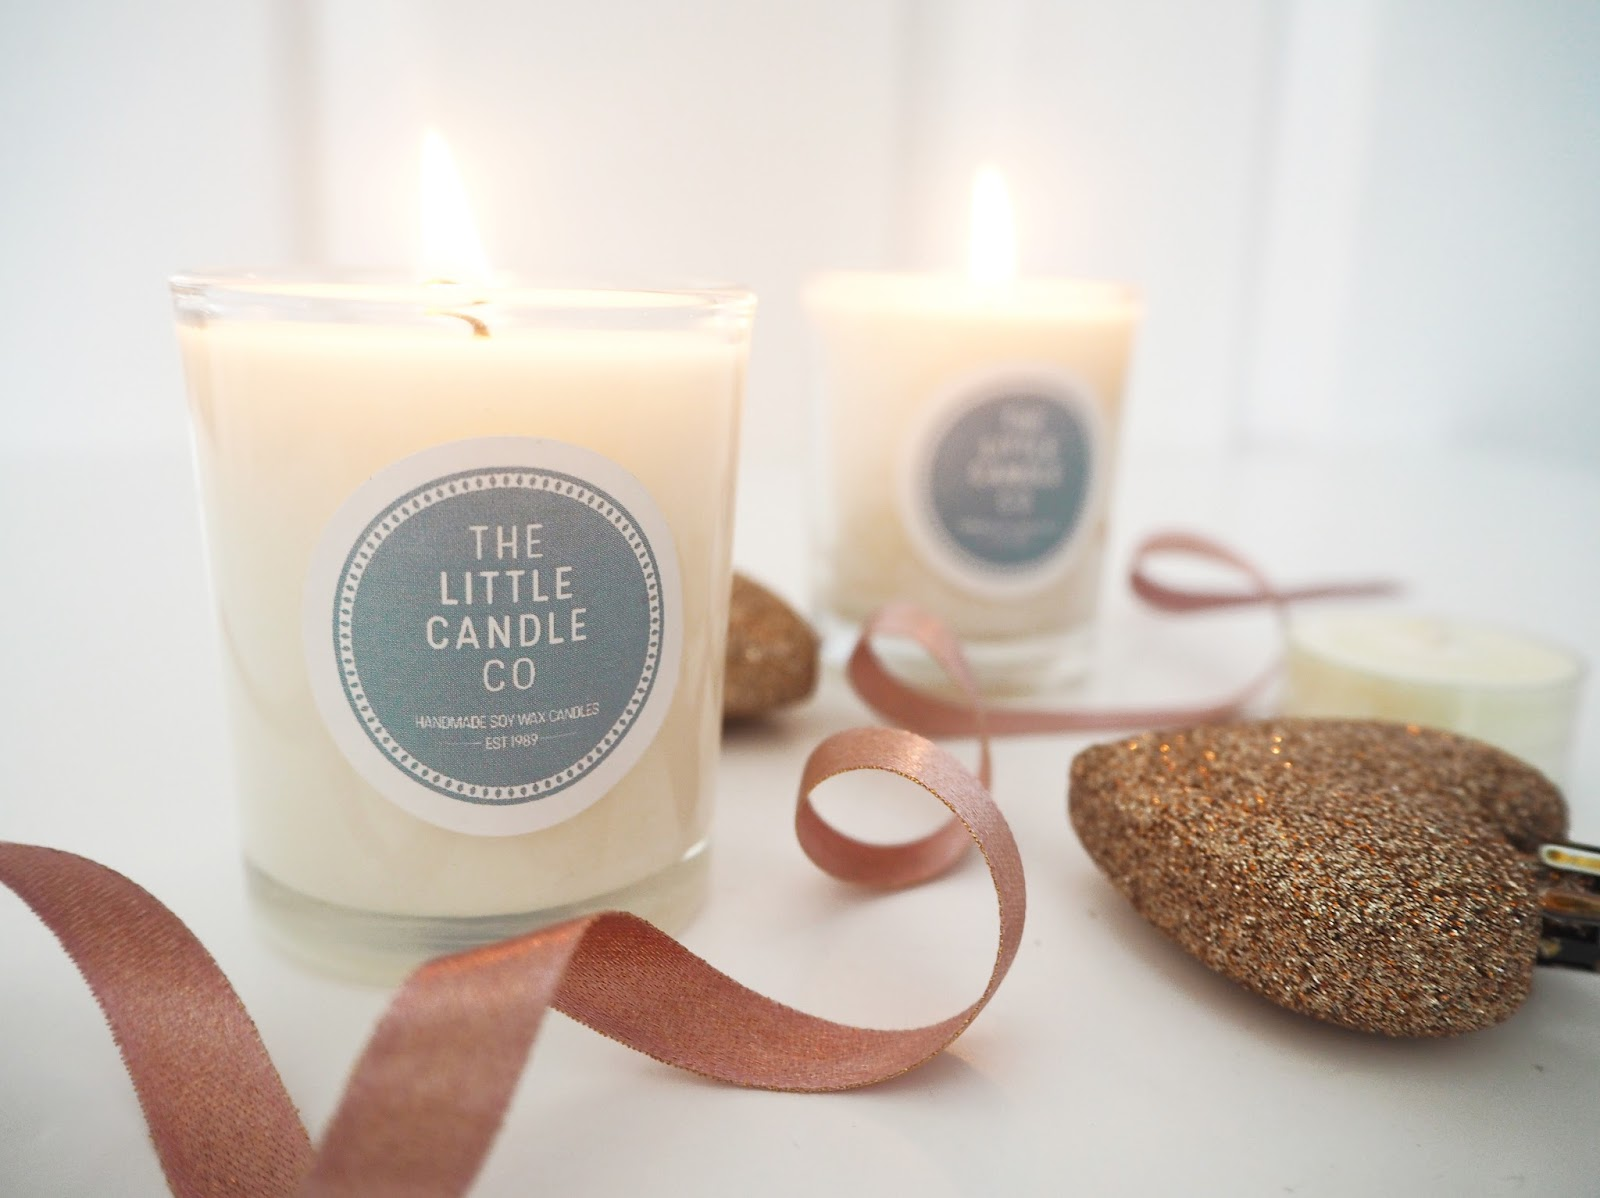 The Little Candle Co, Katie Kirk Loves, Candle Review, Handmade Candles, Handmade in the UK, Fragranced Candles, Handmade Gifts, UK Blogger, Candle Blogger, Lifestyle Blogger